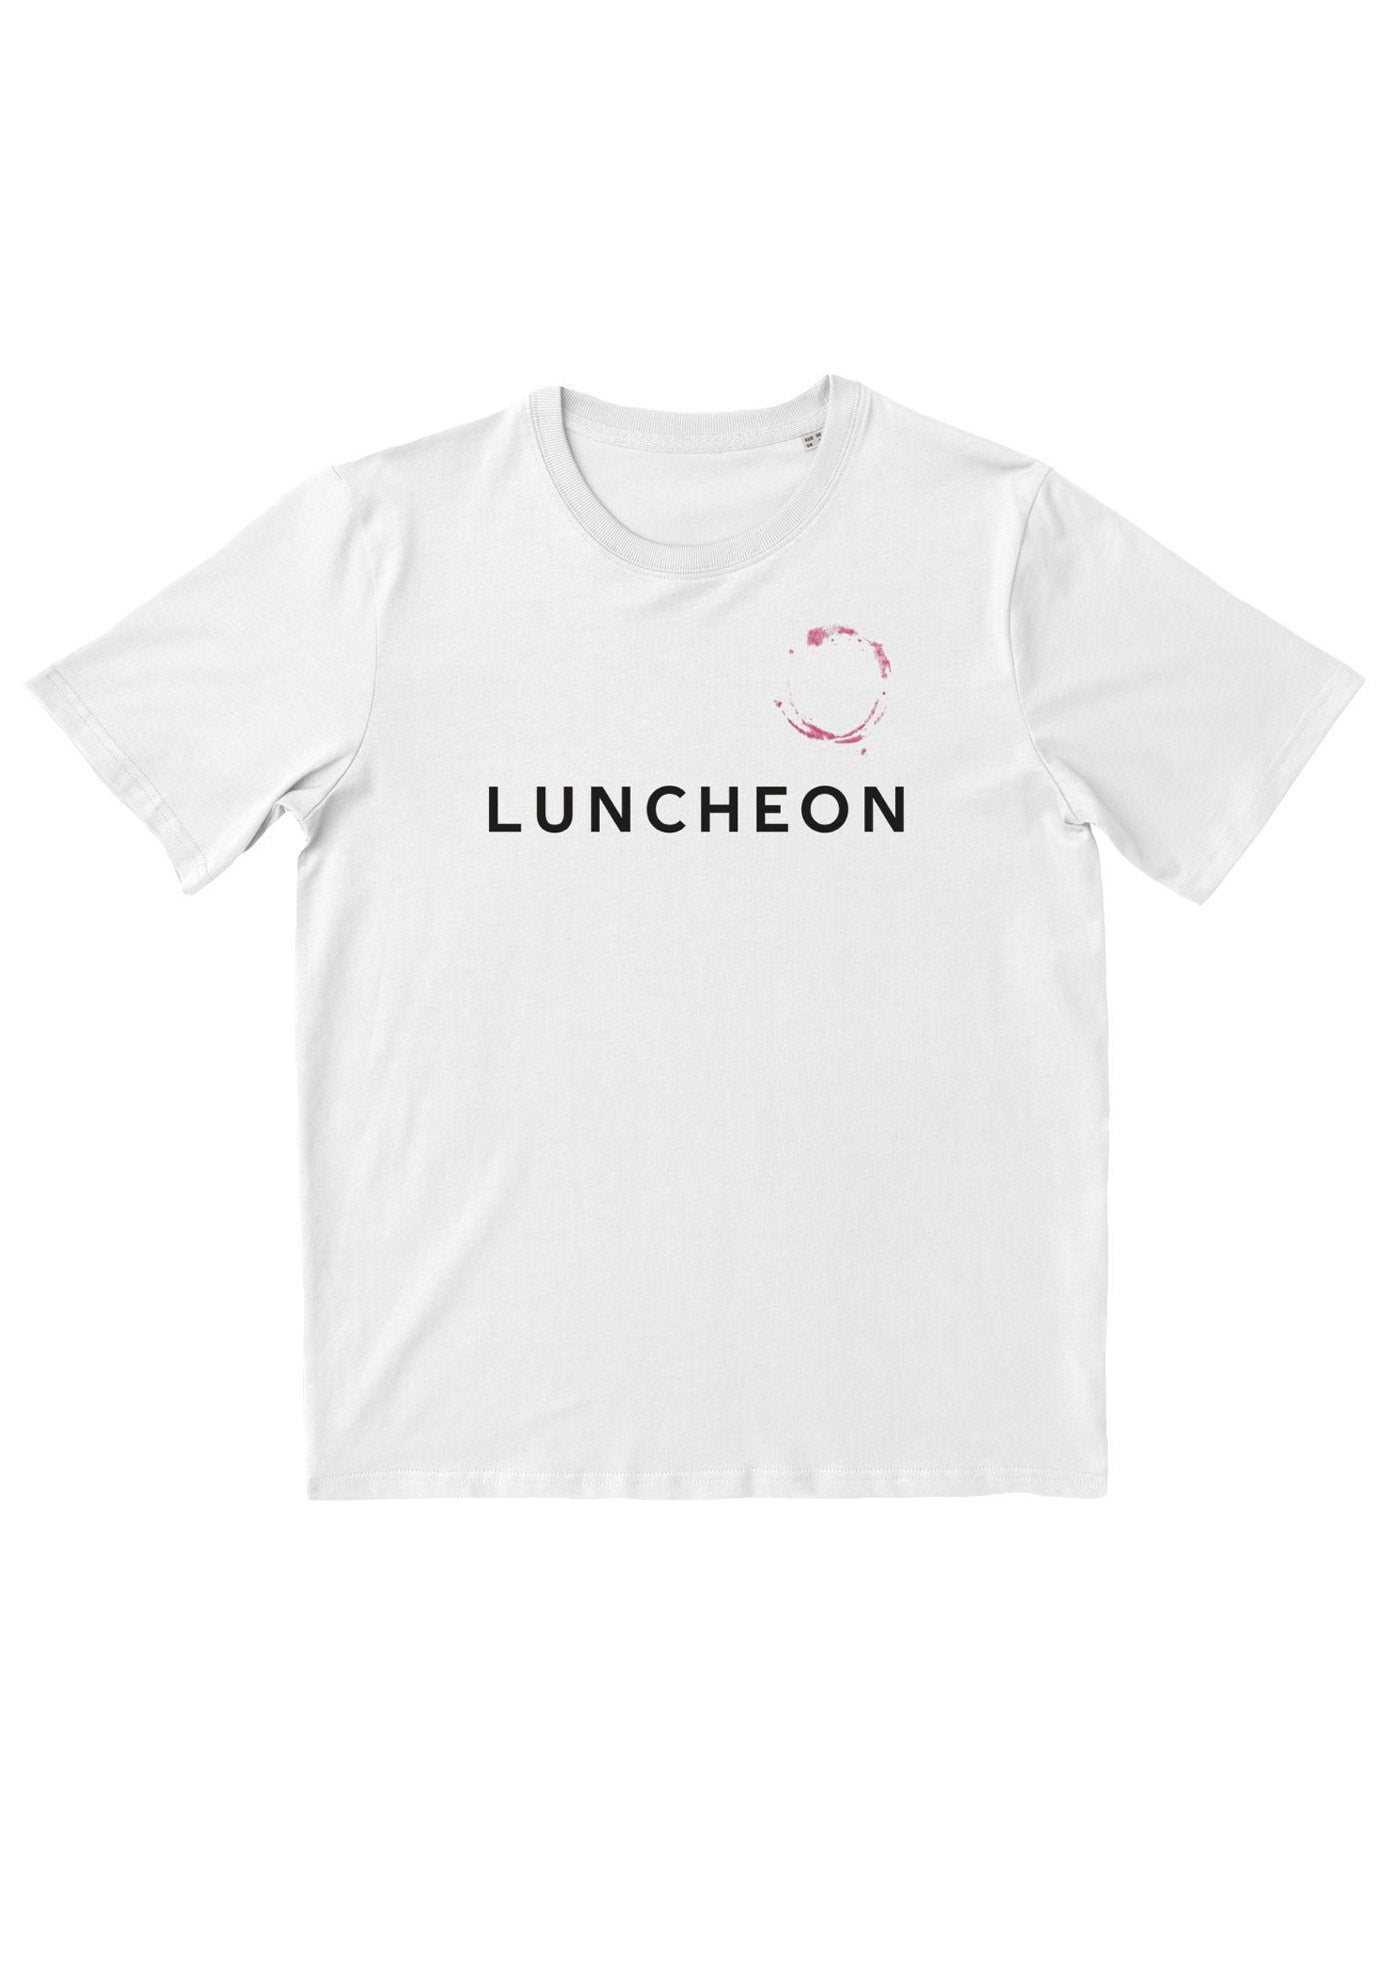 LUNCHEON T-Shirt}